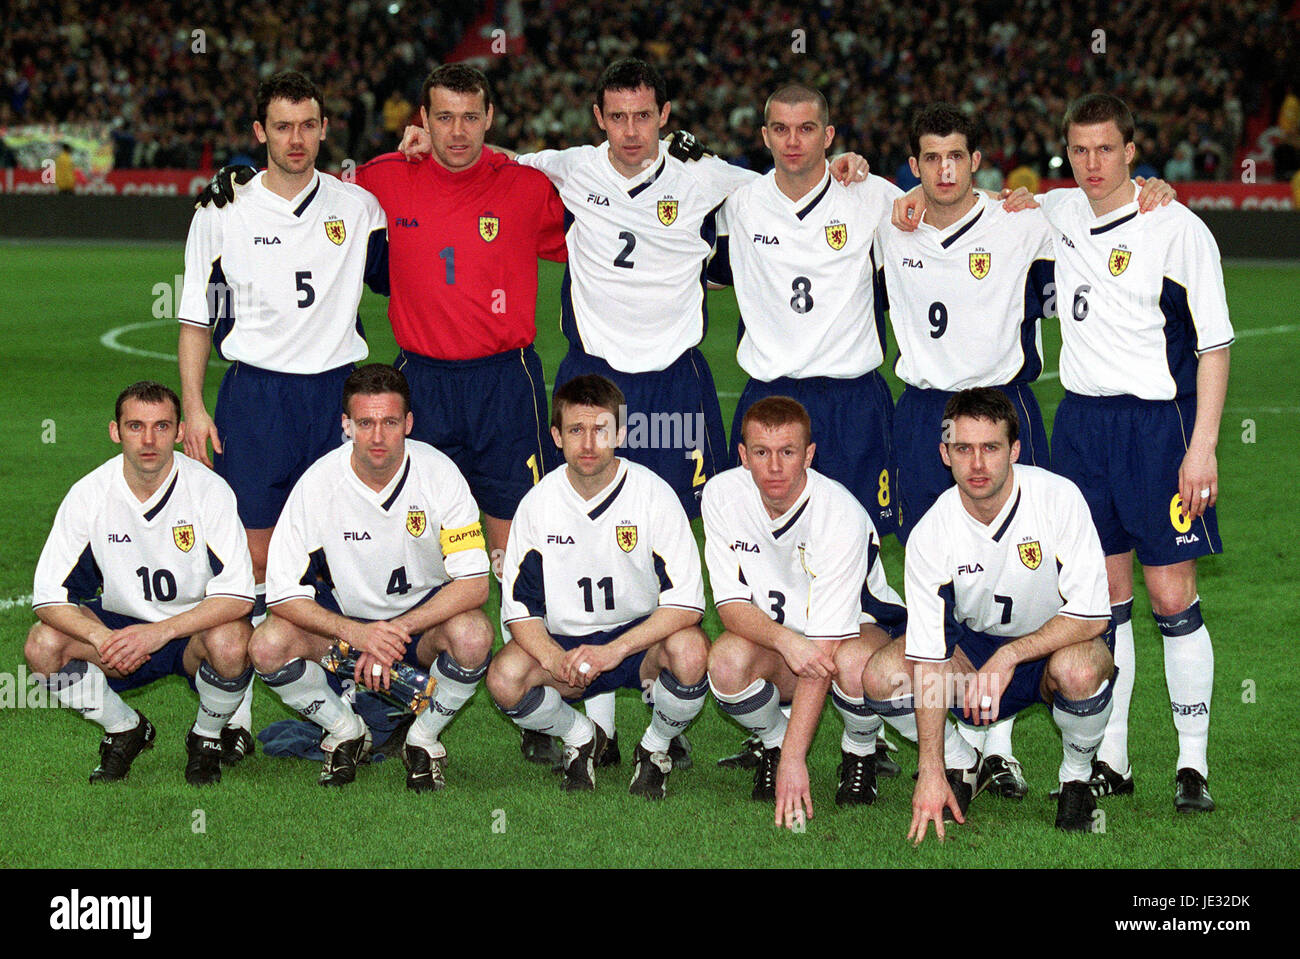 Scotland Team Group Stock Photos & Scotland Team Group ...